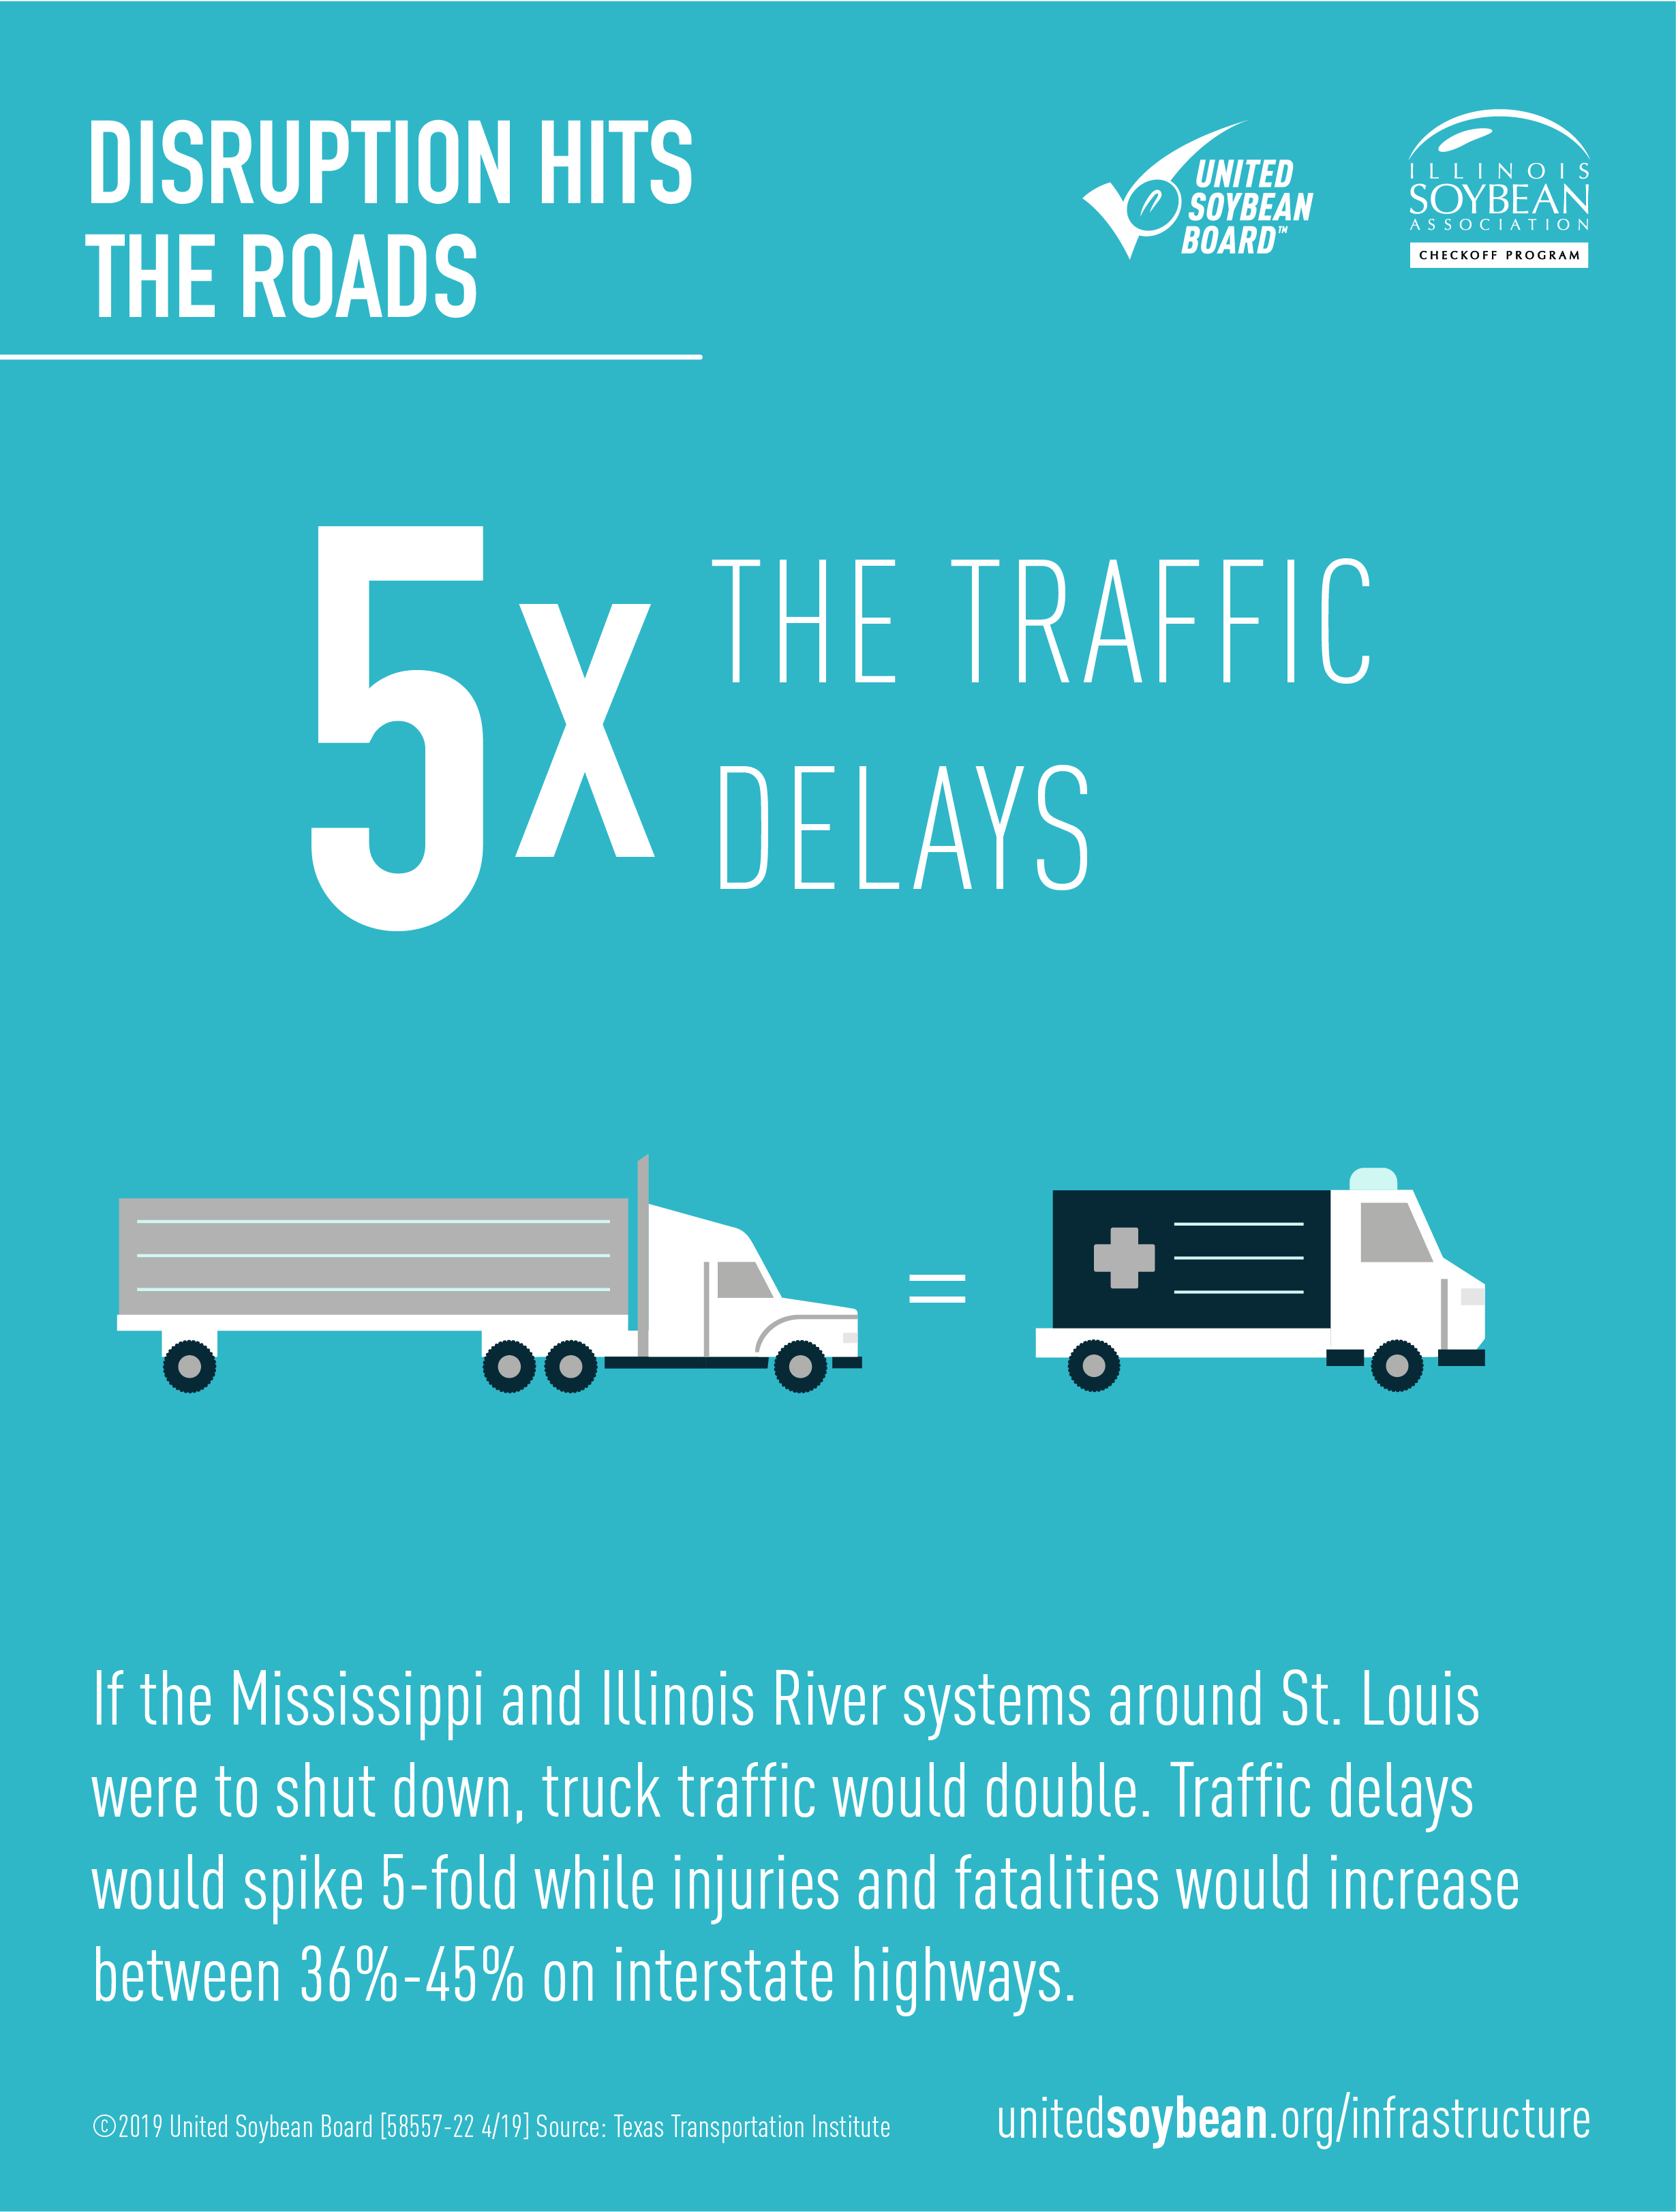 If the Mississippi and Illinois River systems around St. Louis were to shut down, truck traffic would double.